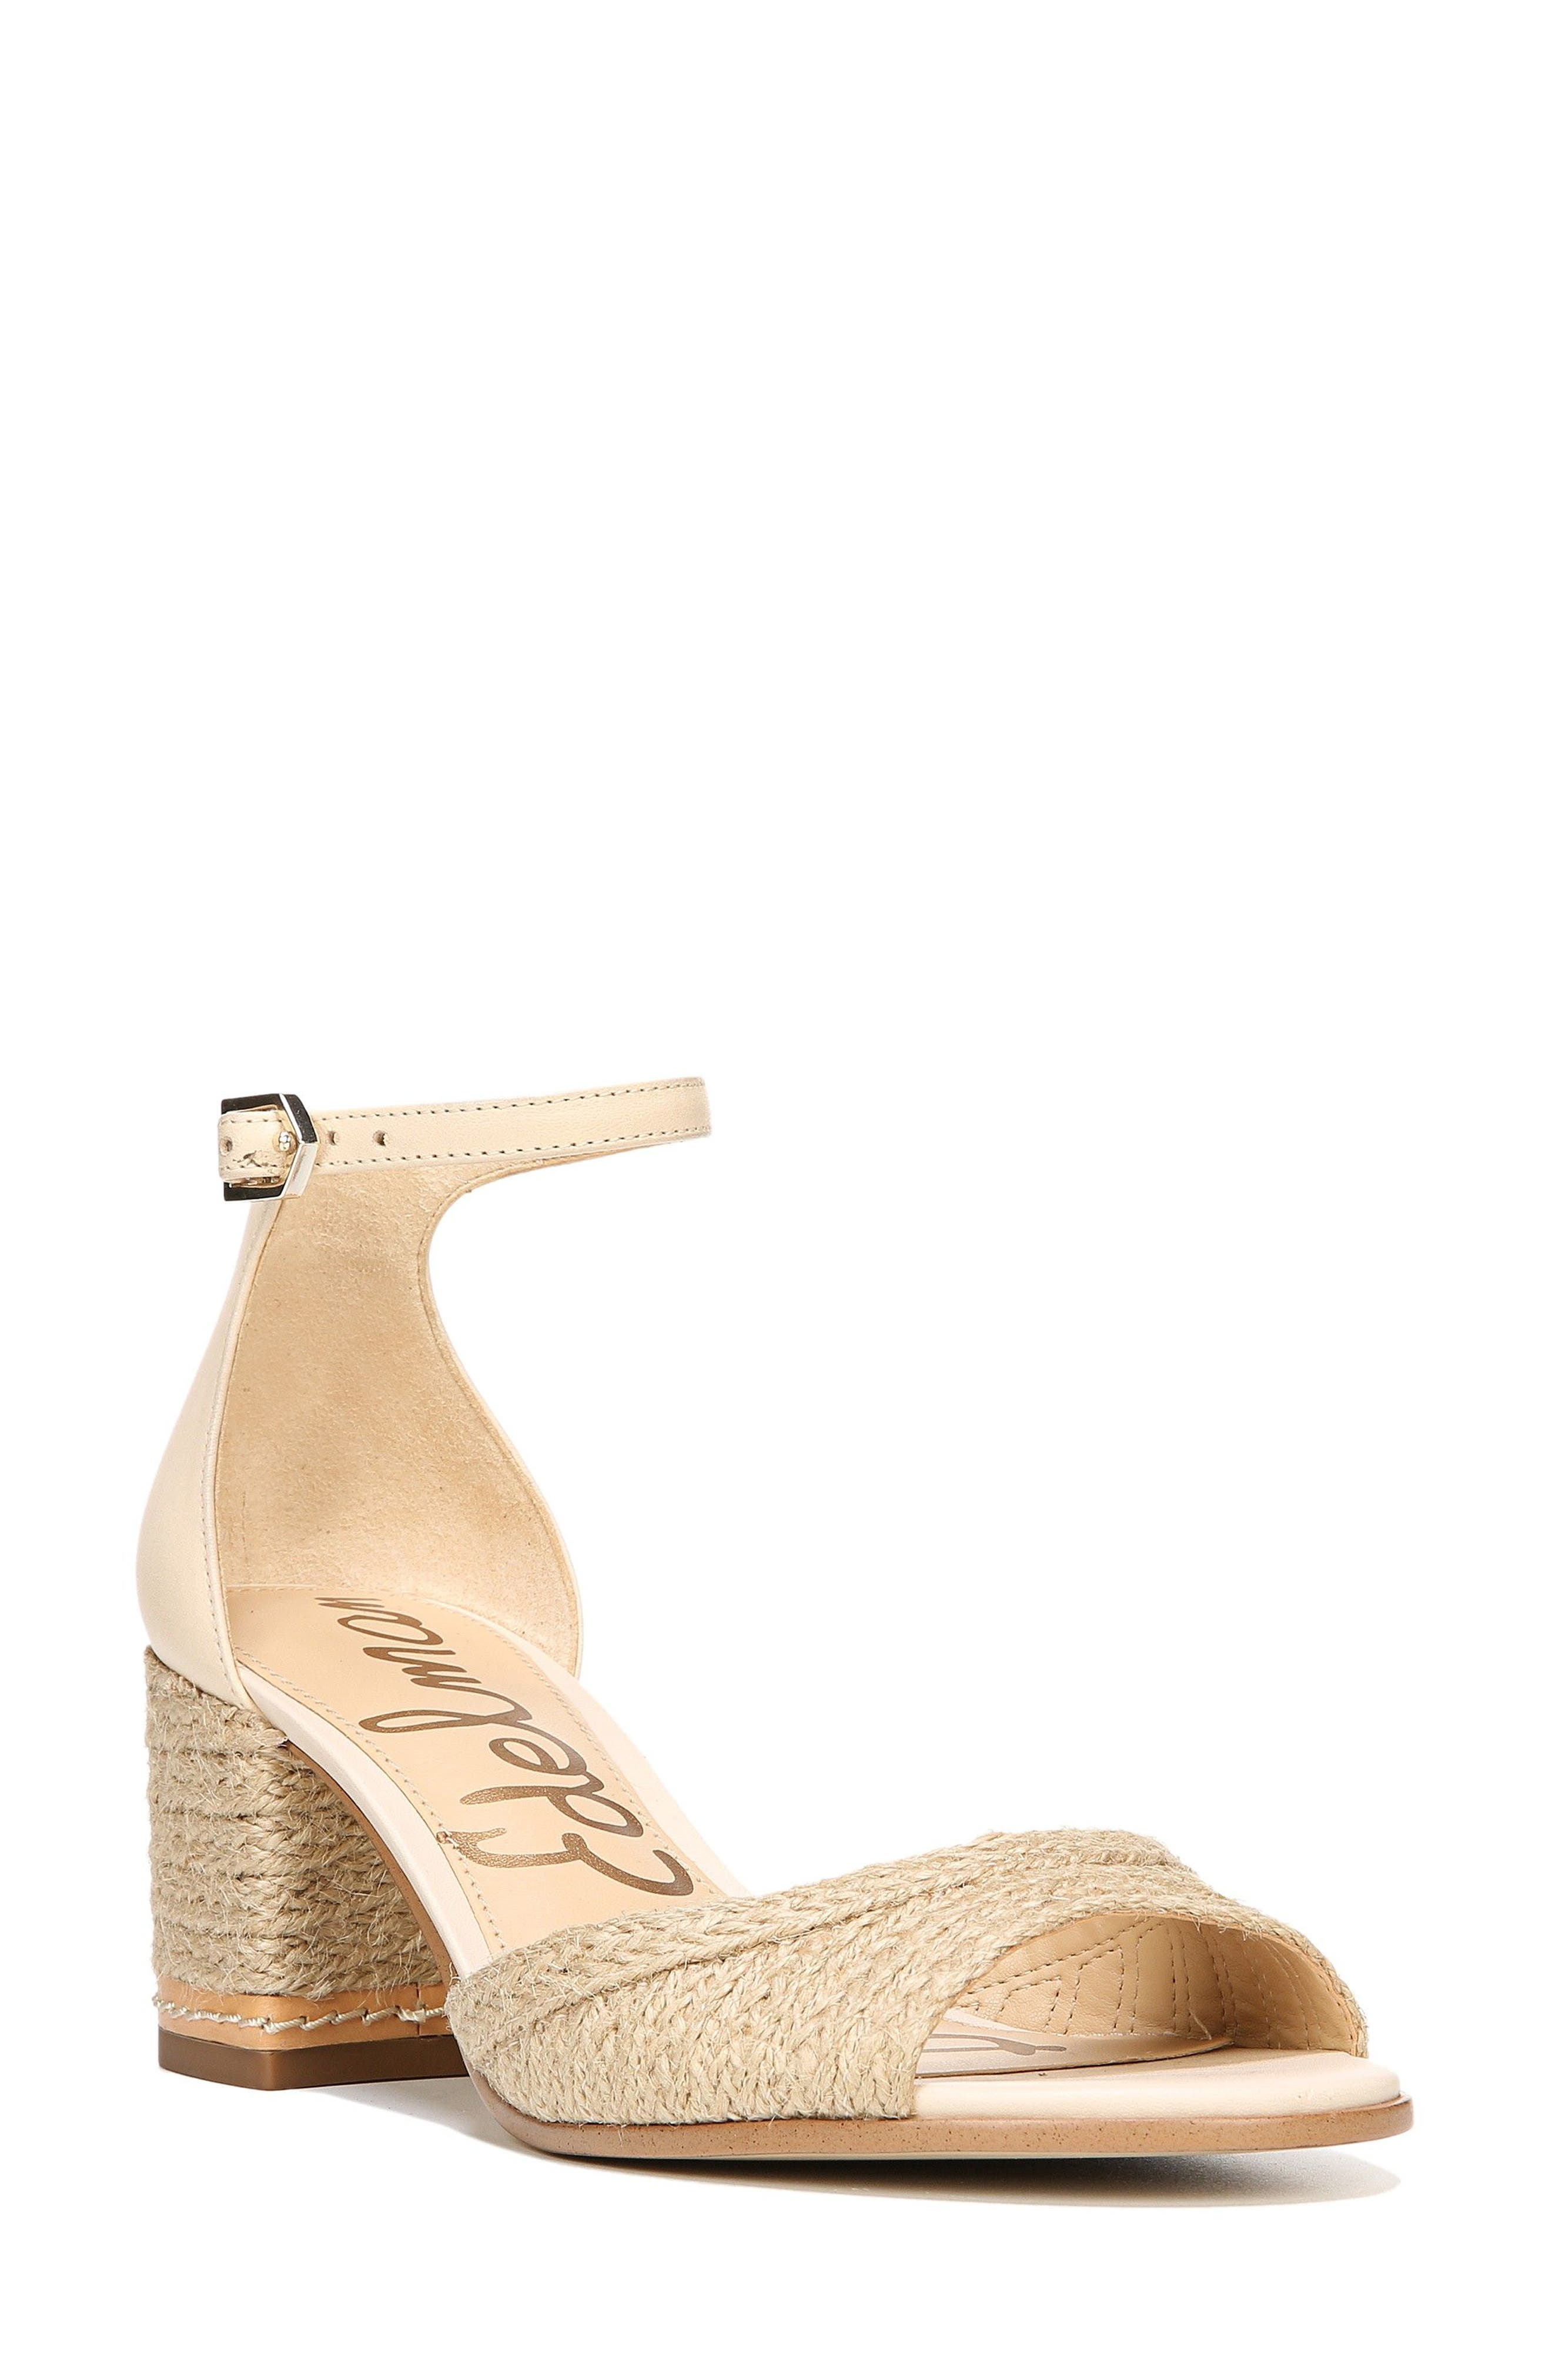 Susie 2 Ankle Strap Sandal,                         Main,                         color, Summer Sand Leather